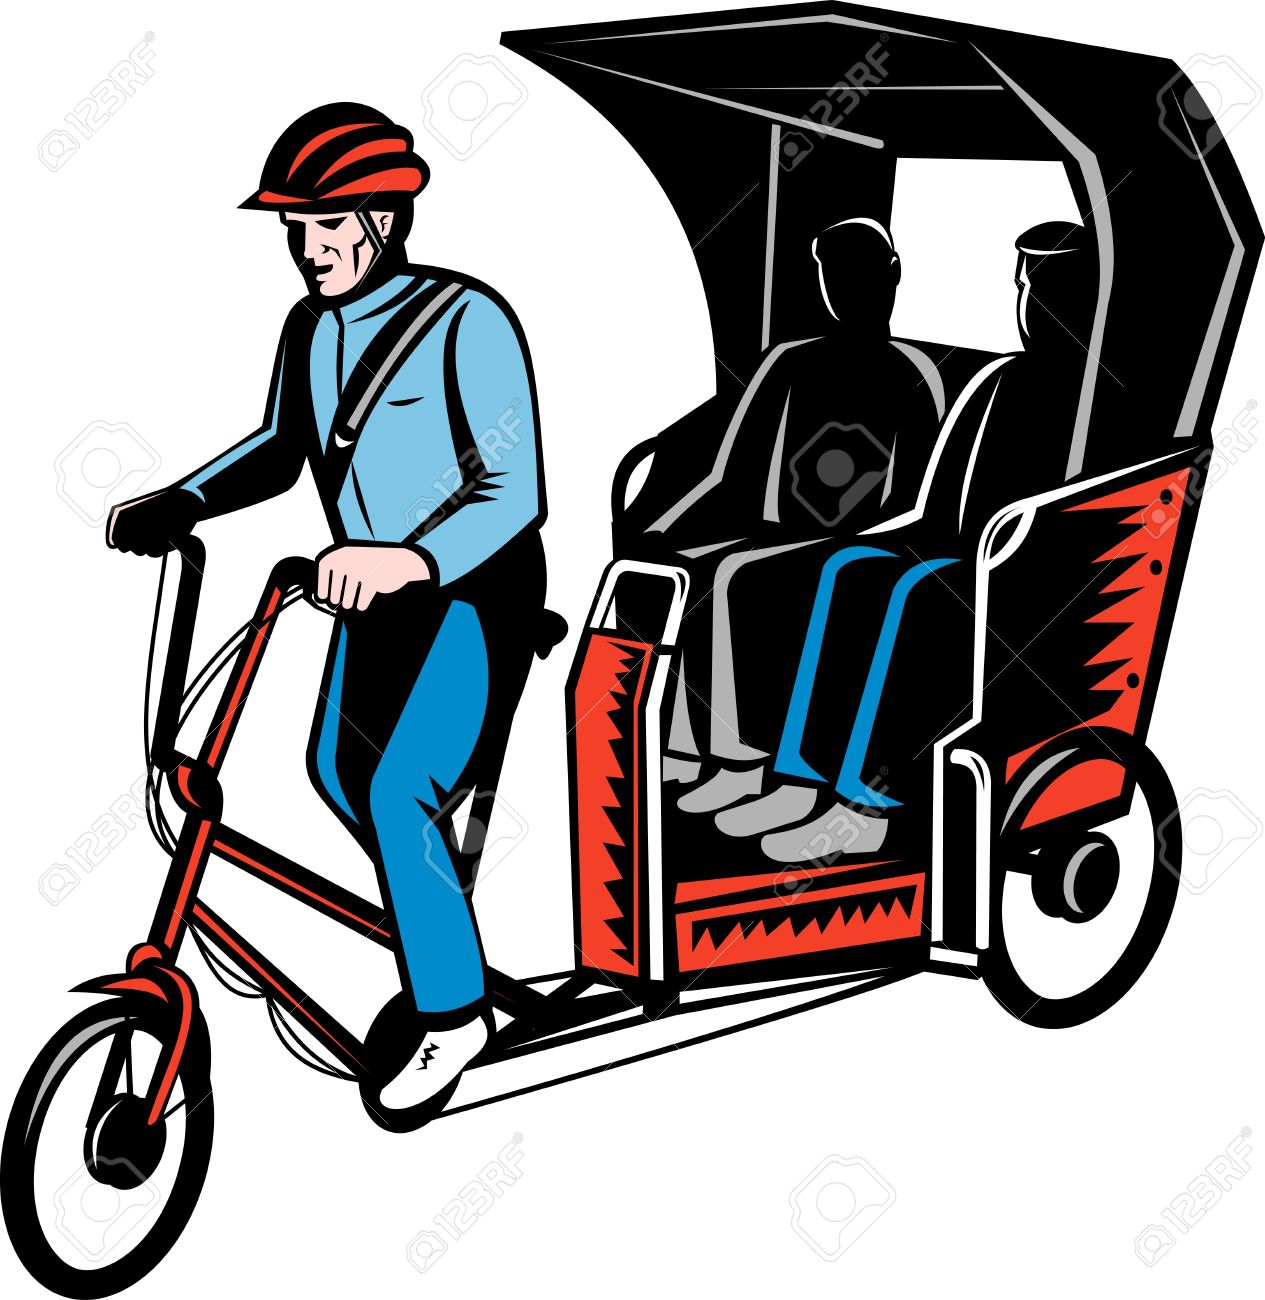 Illustration Of A Cycle Rickshaw With Driver And Two Passenger.